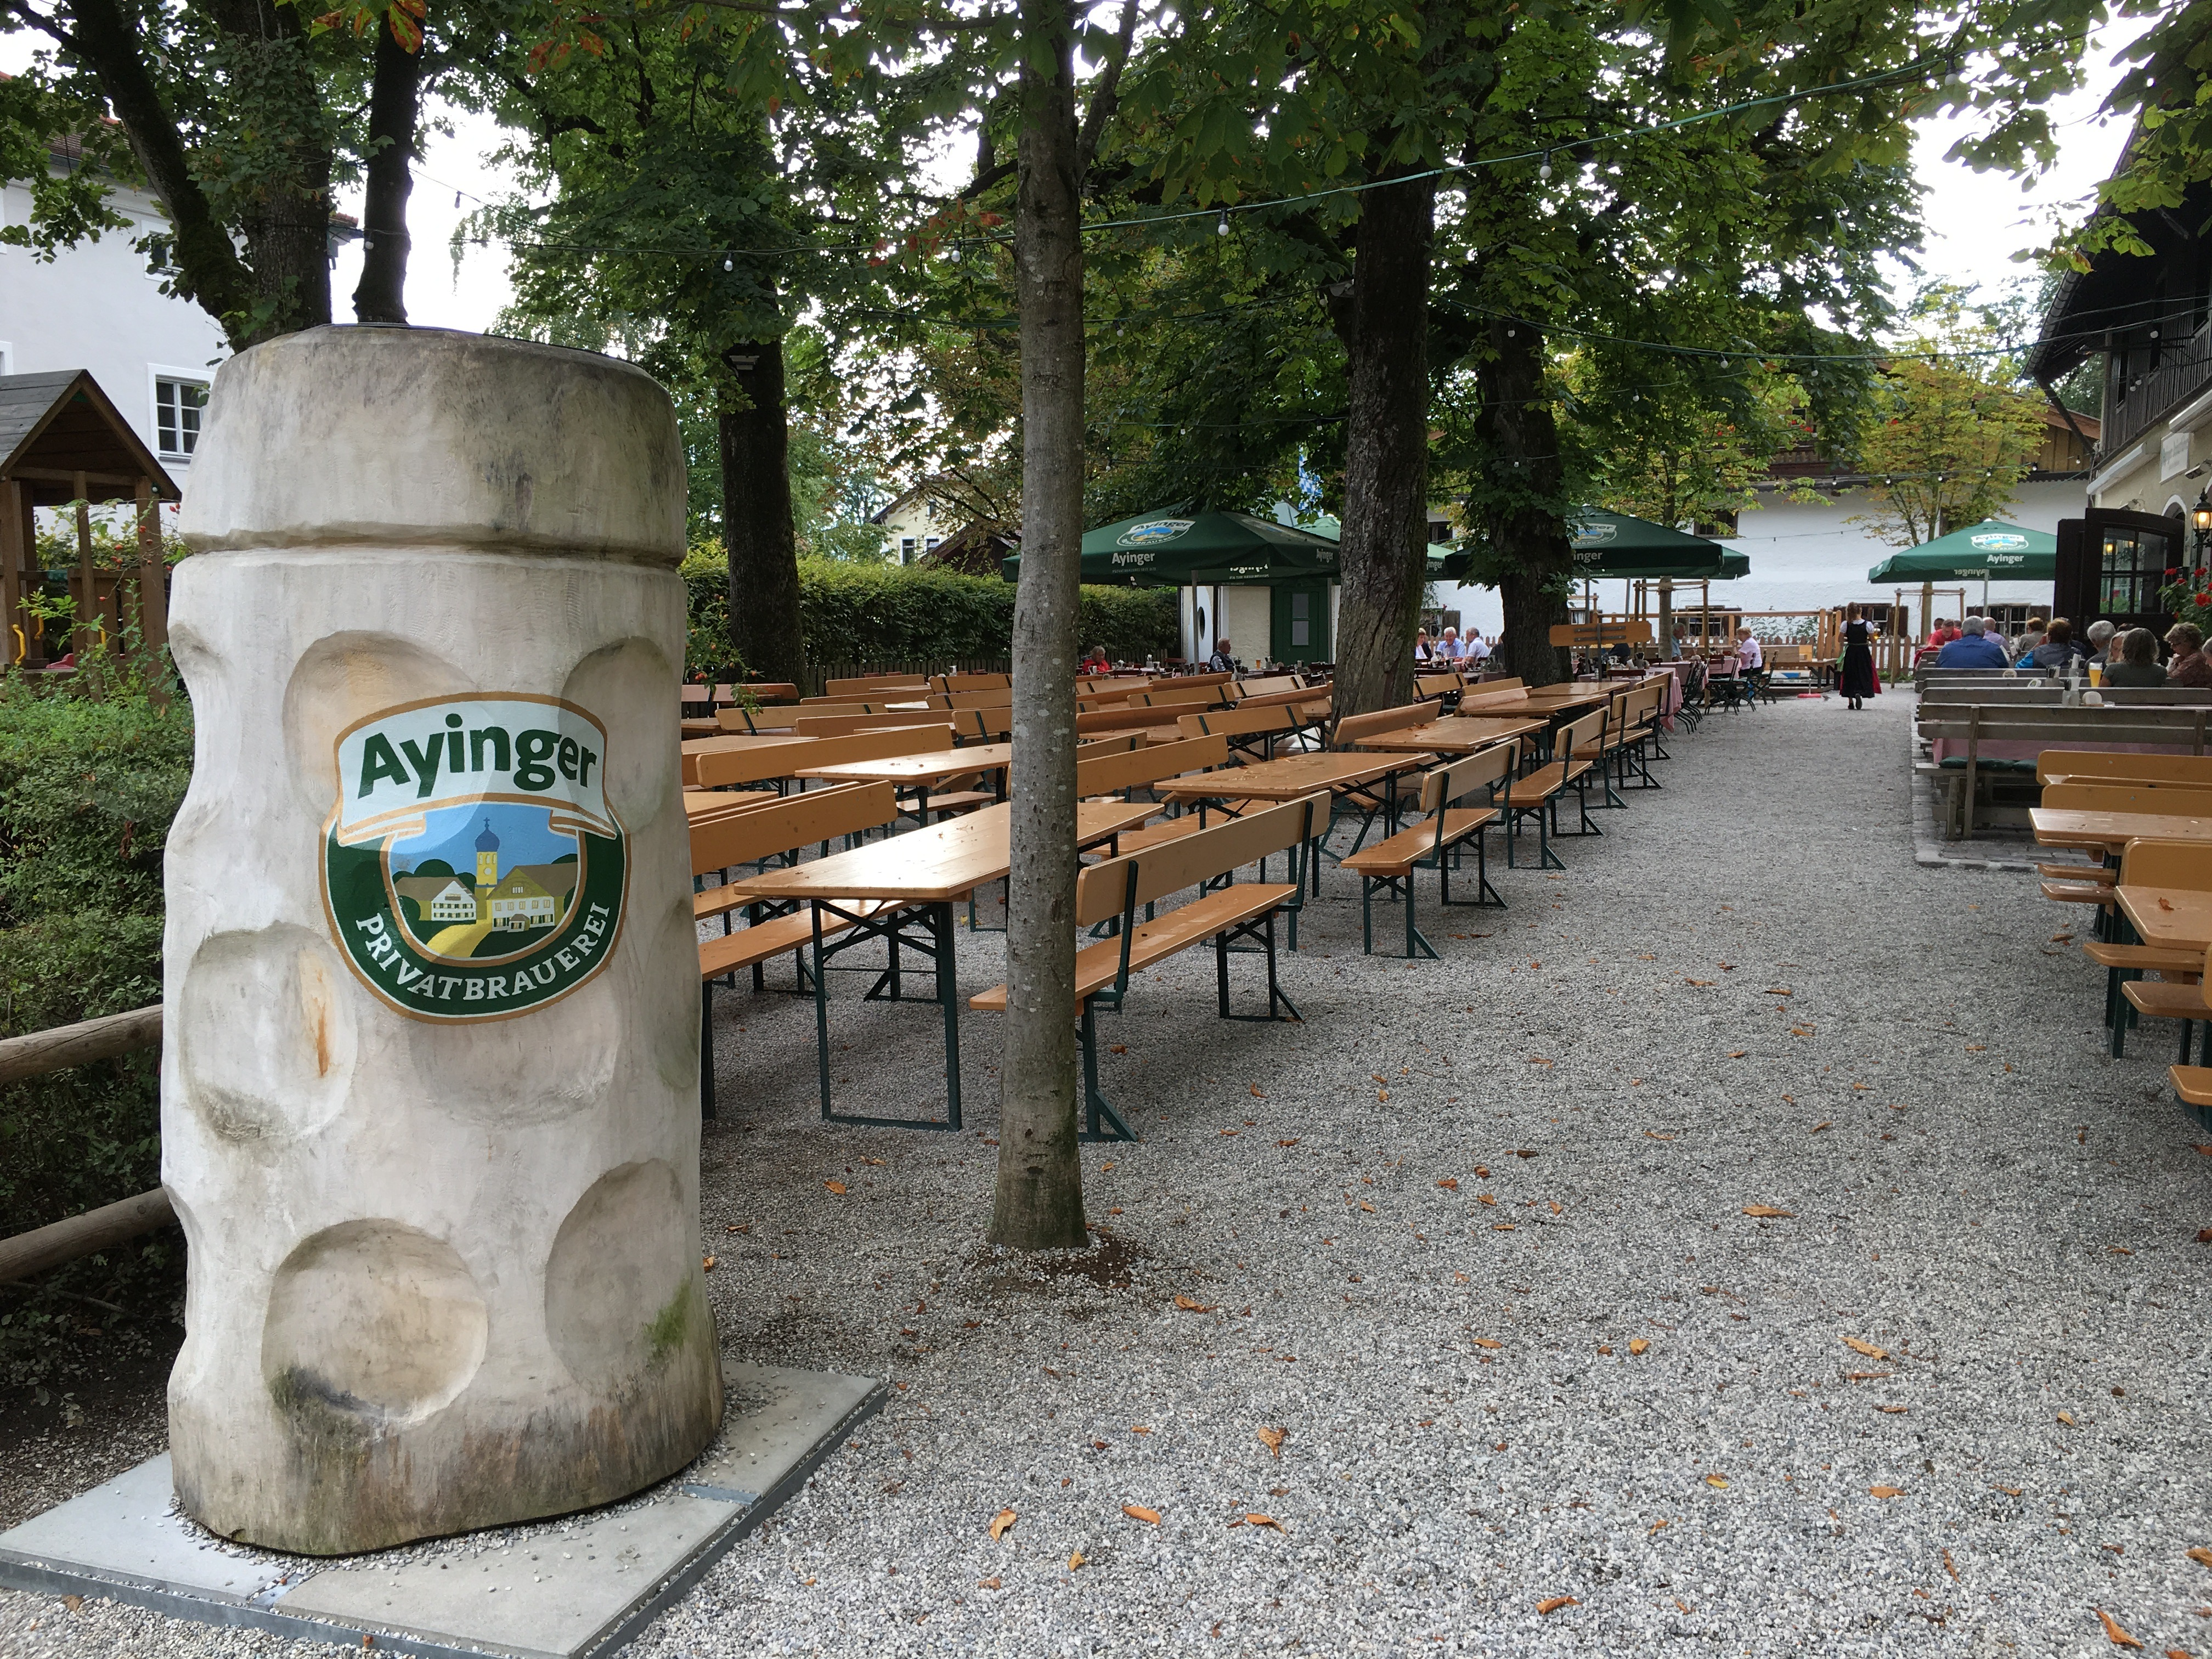 A view of the massive beer garden seating at Ayinger Braustuberl.